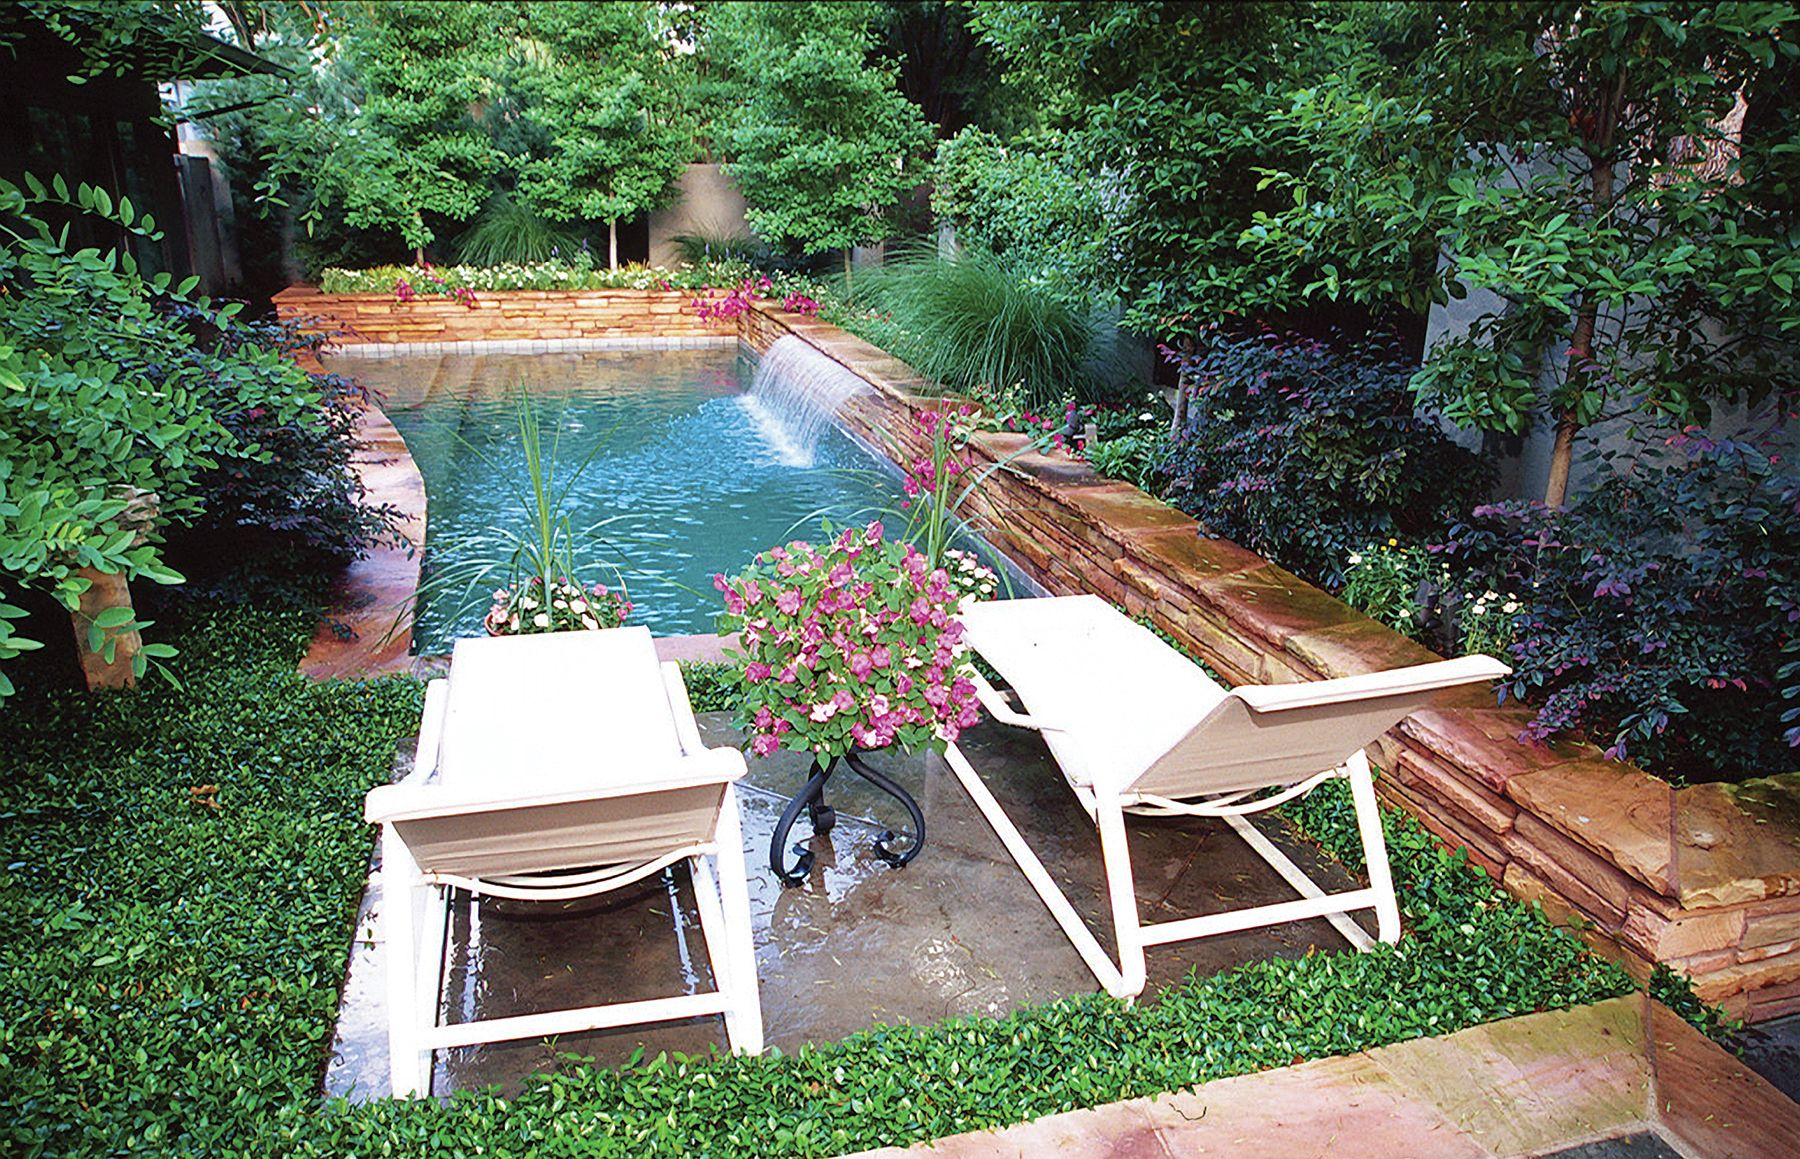 Dfw Landscape Design News Small Backyard Pools Pools For Small